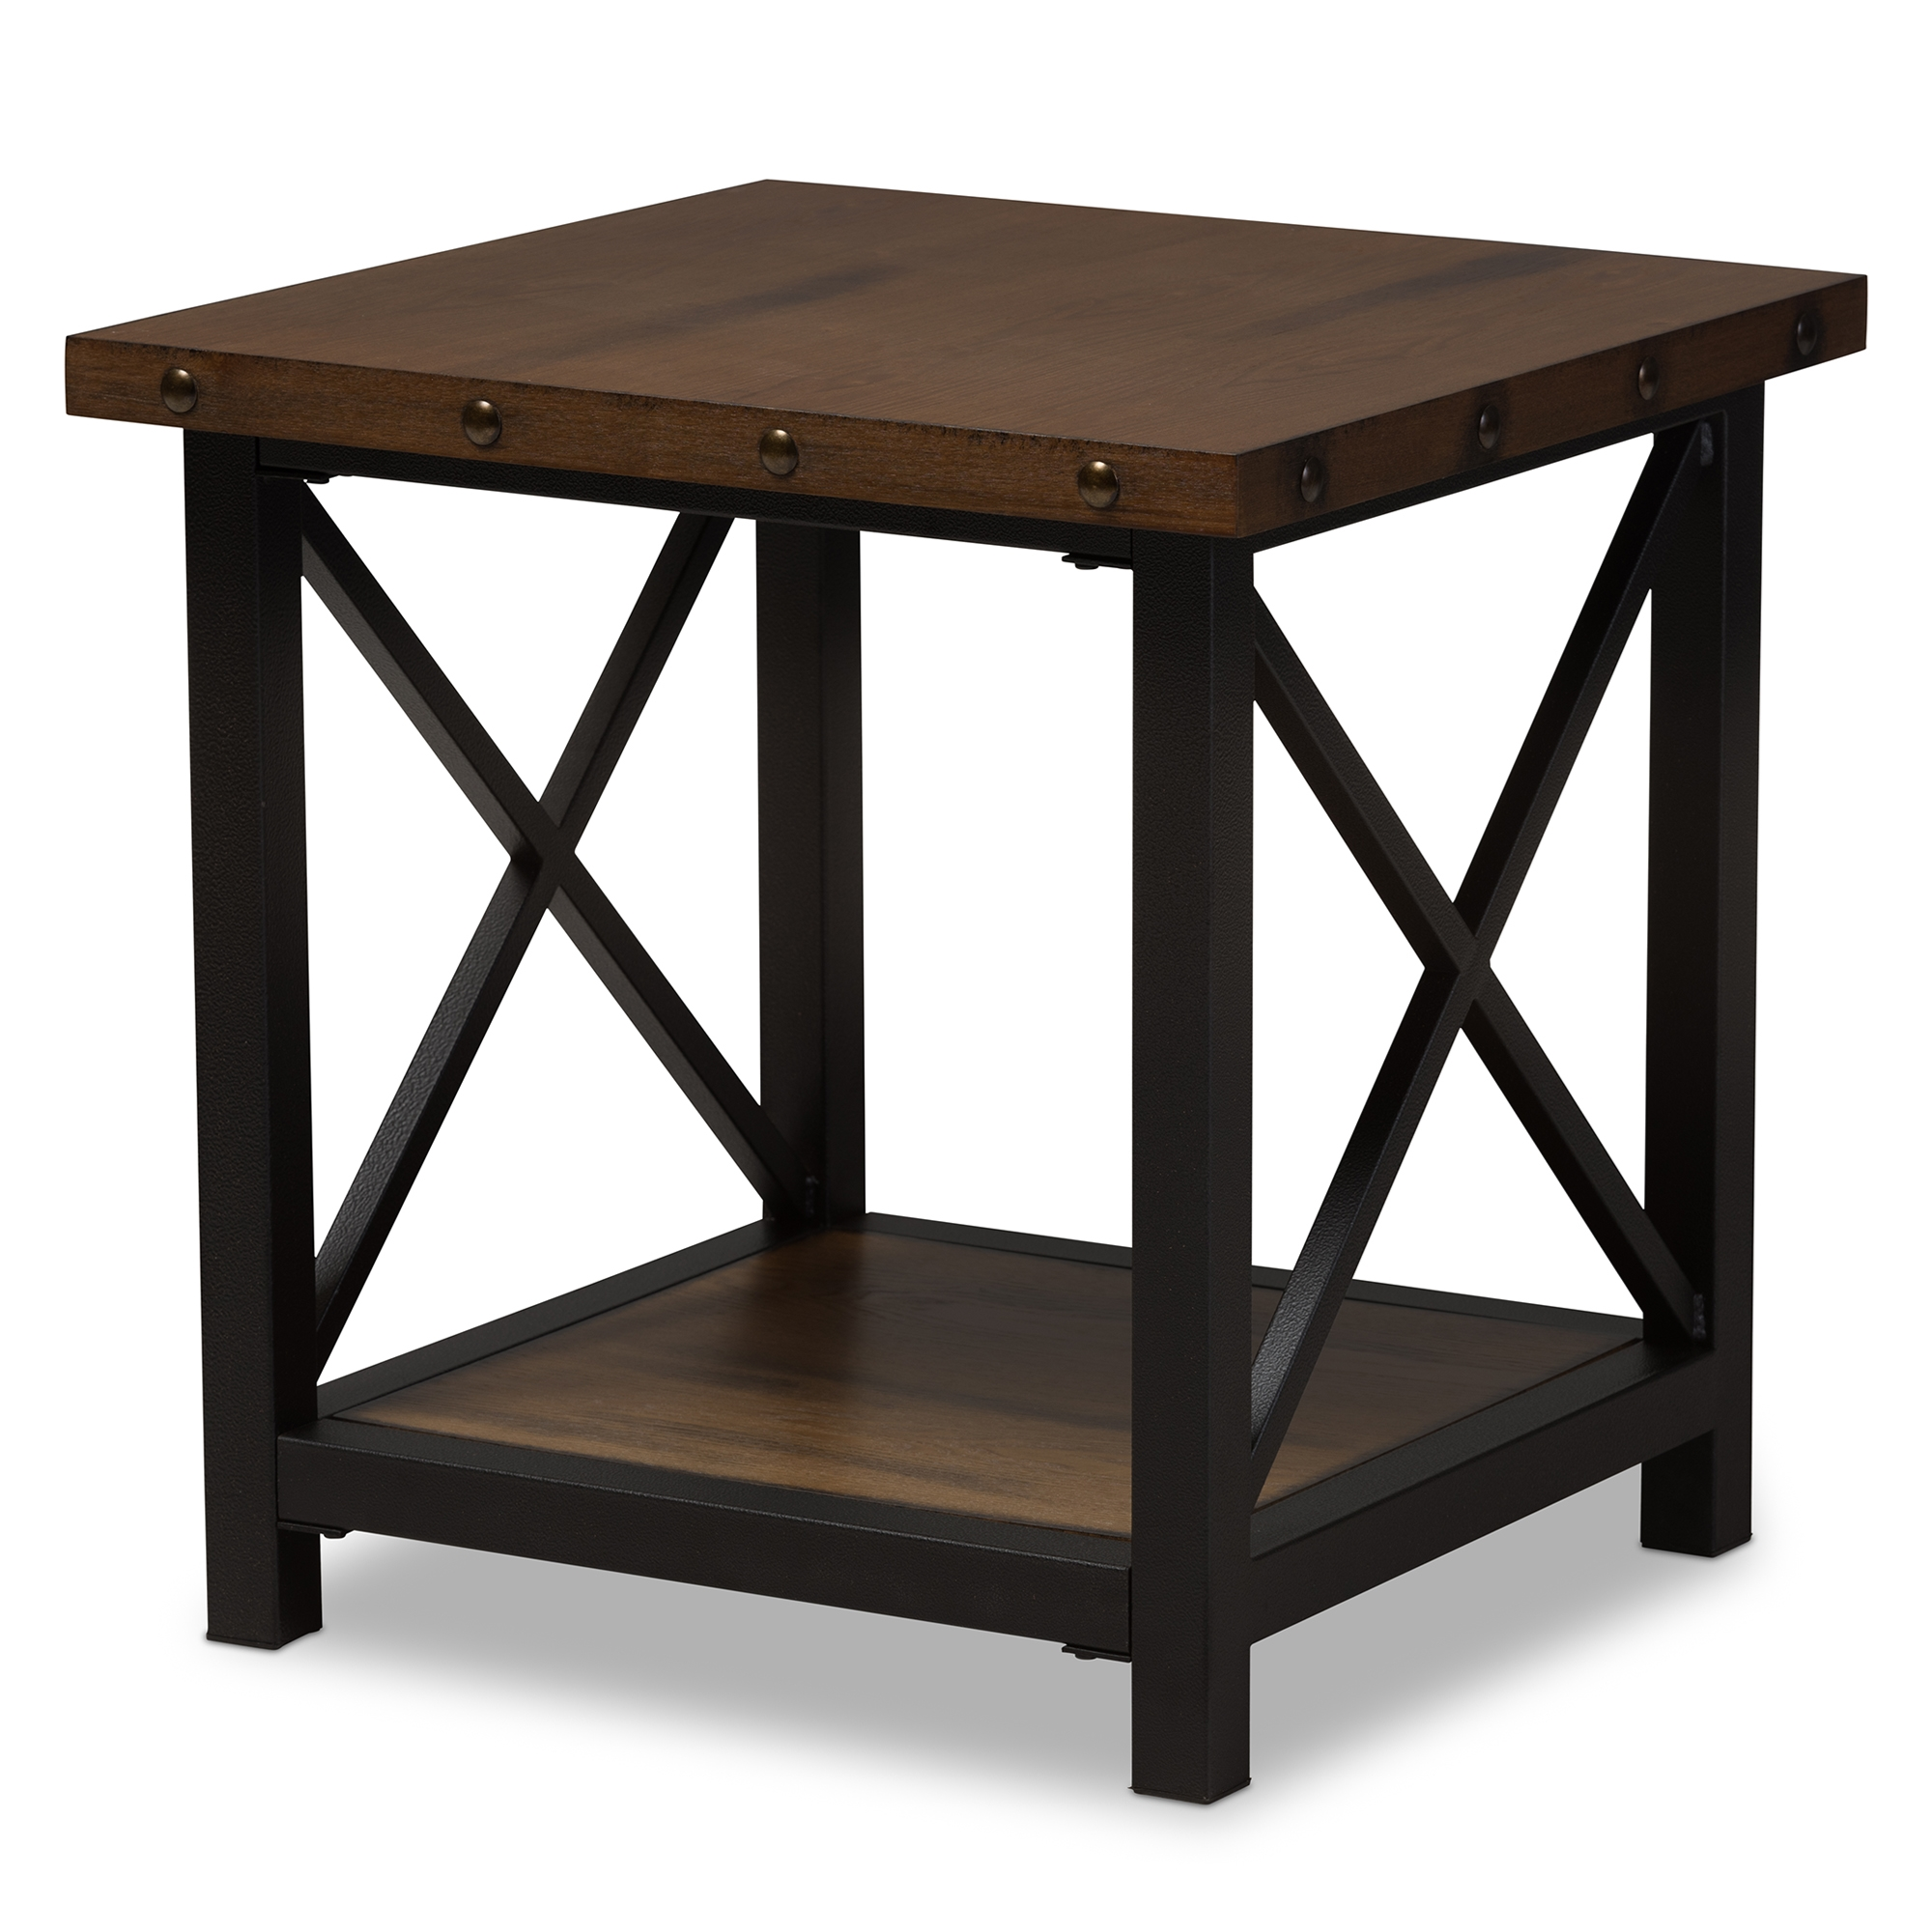 baxton studio herzen rustic industrial style antique black textured and wood end table finished metal distressed occasional round dining with glass top powell beds vintage bamboo